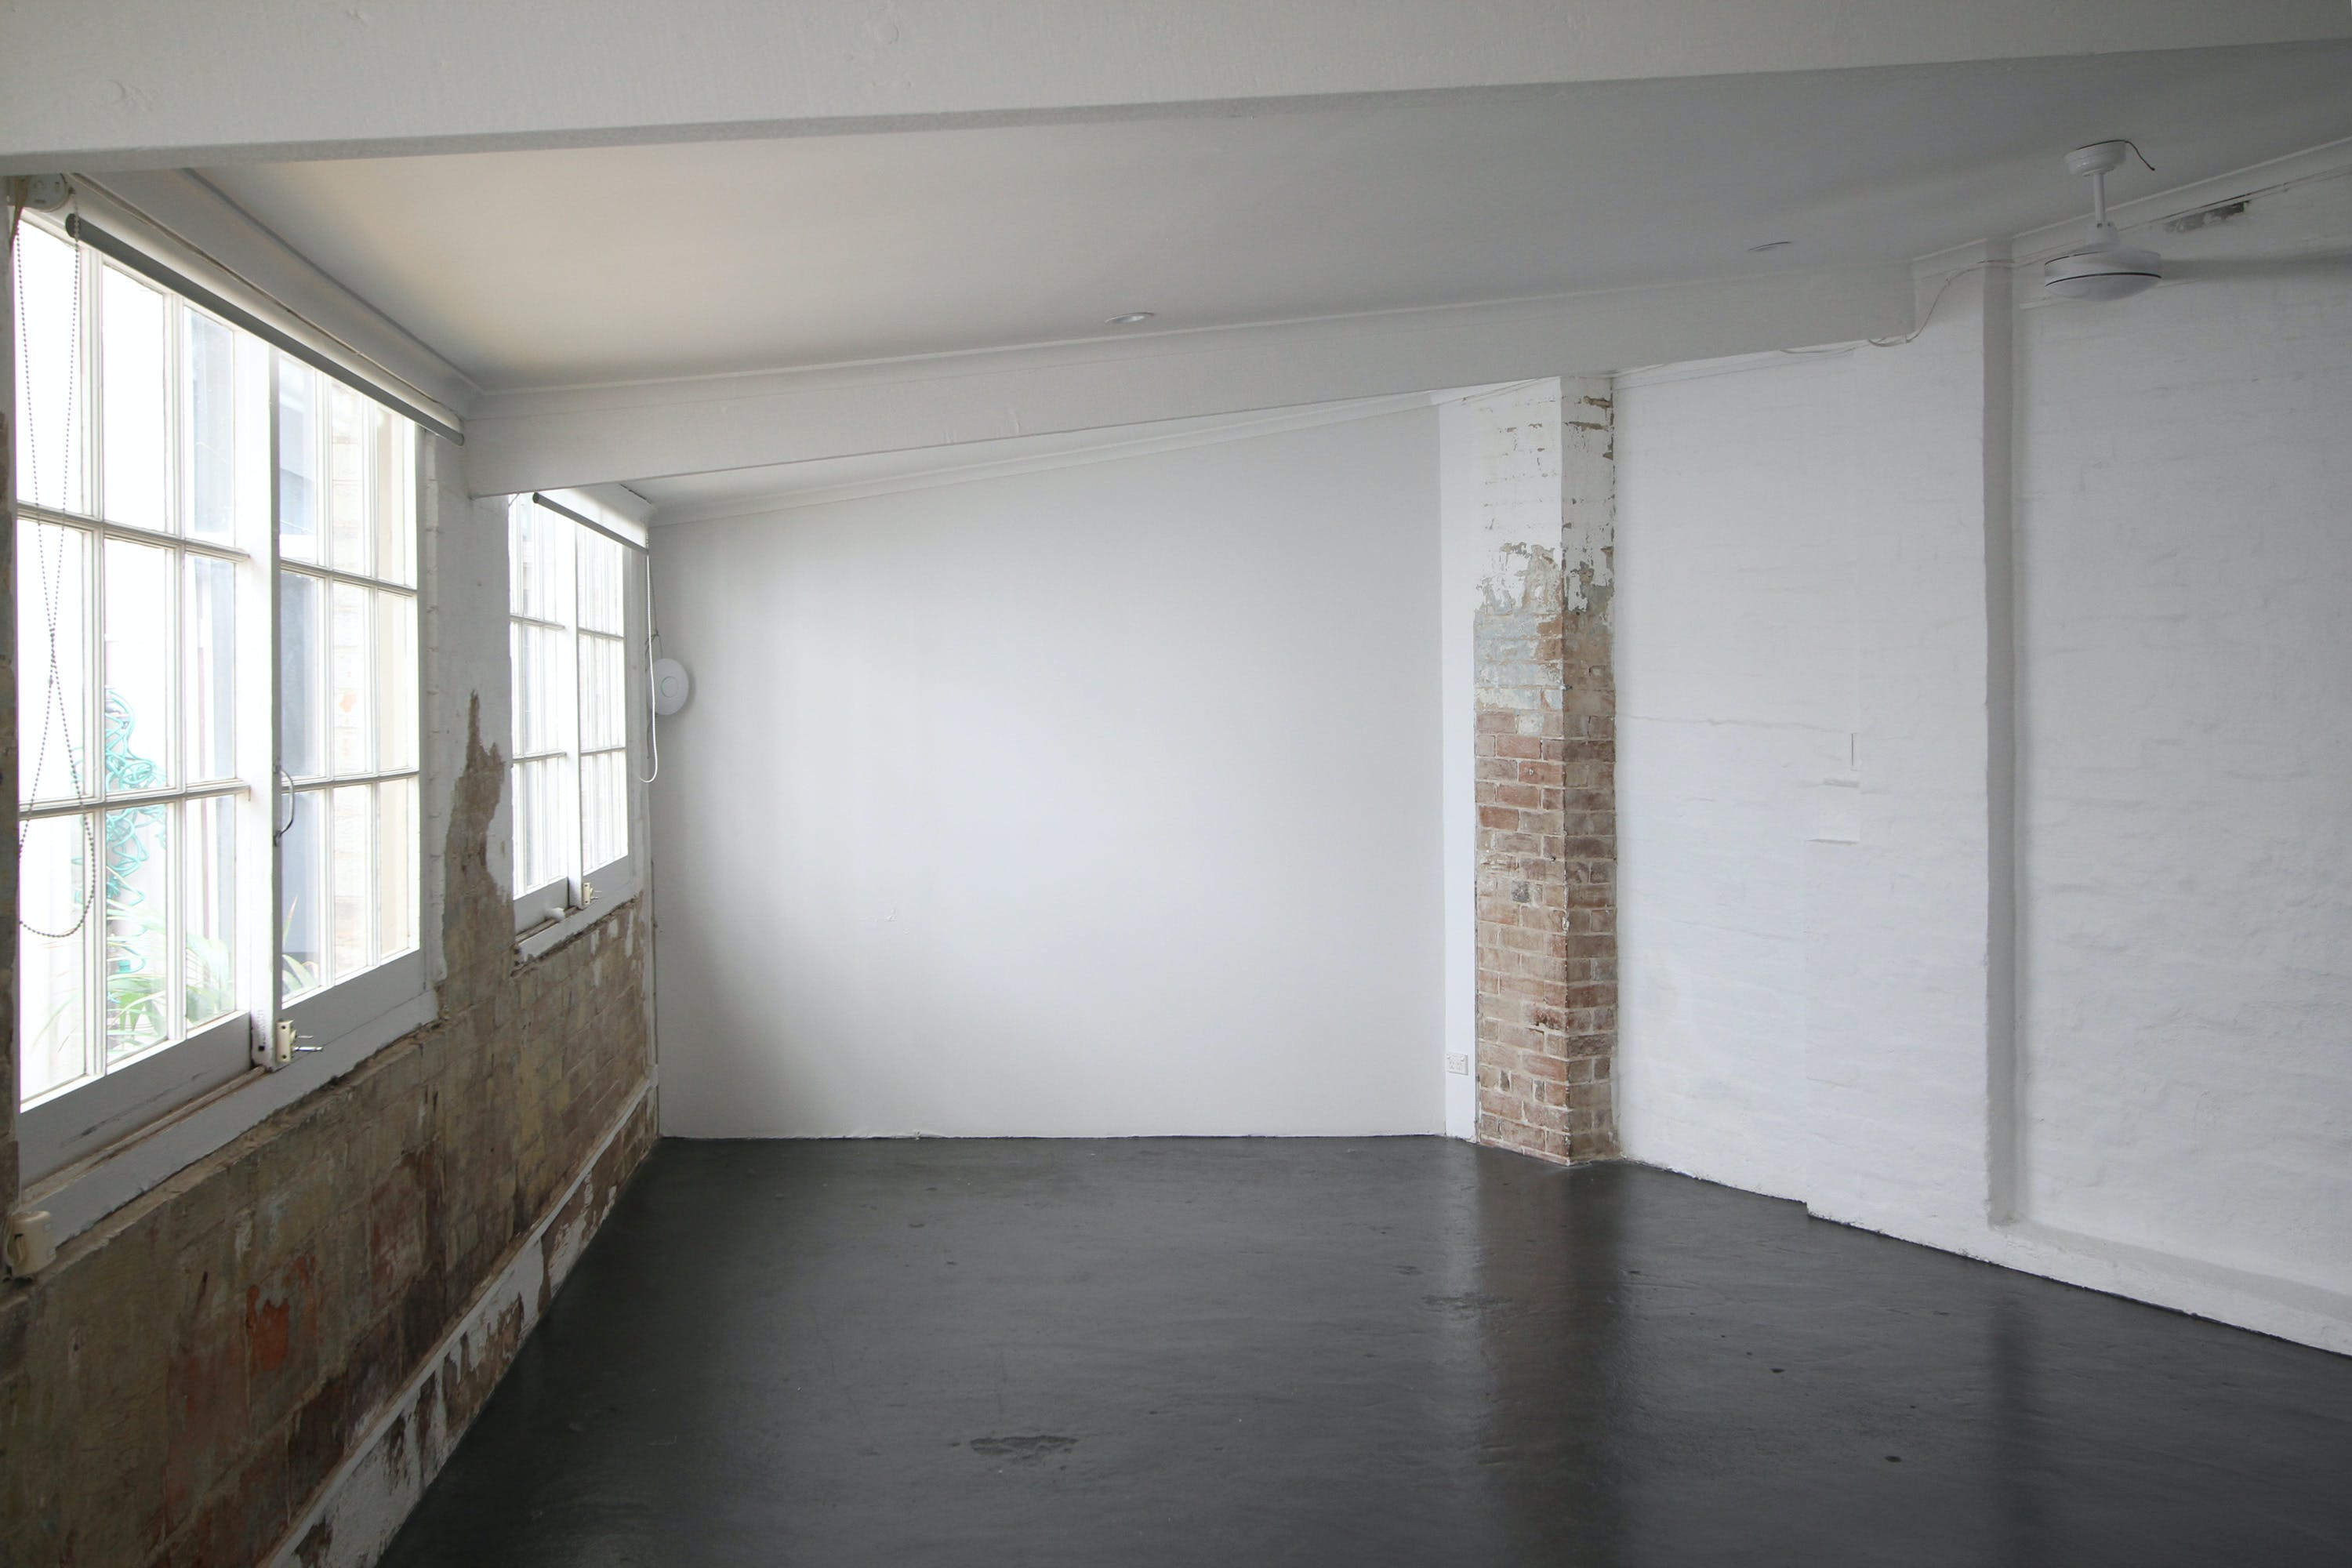 Annexe, multi-use area at Comber Street Studios, image 2